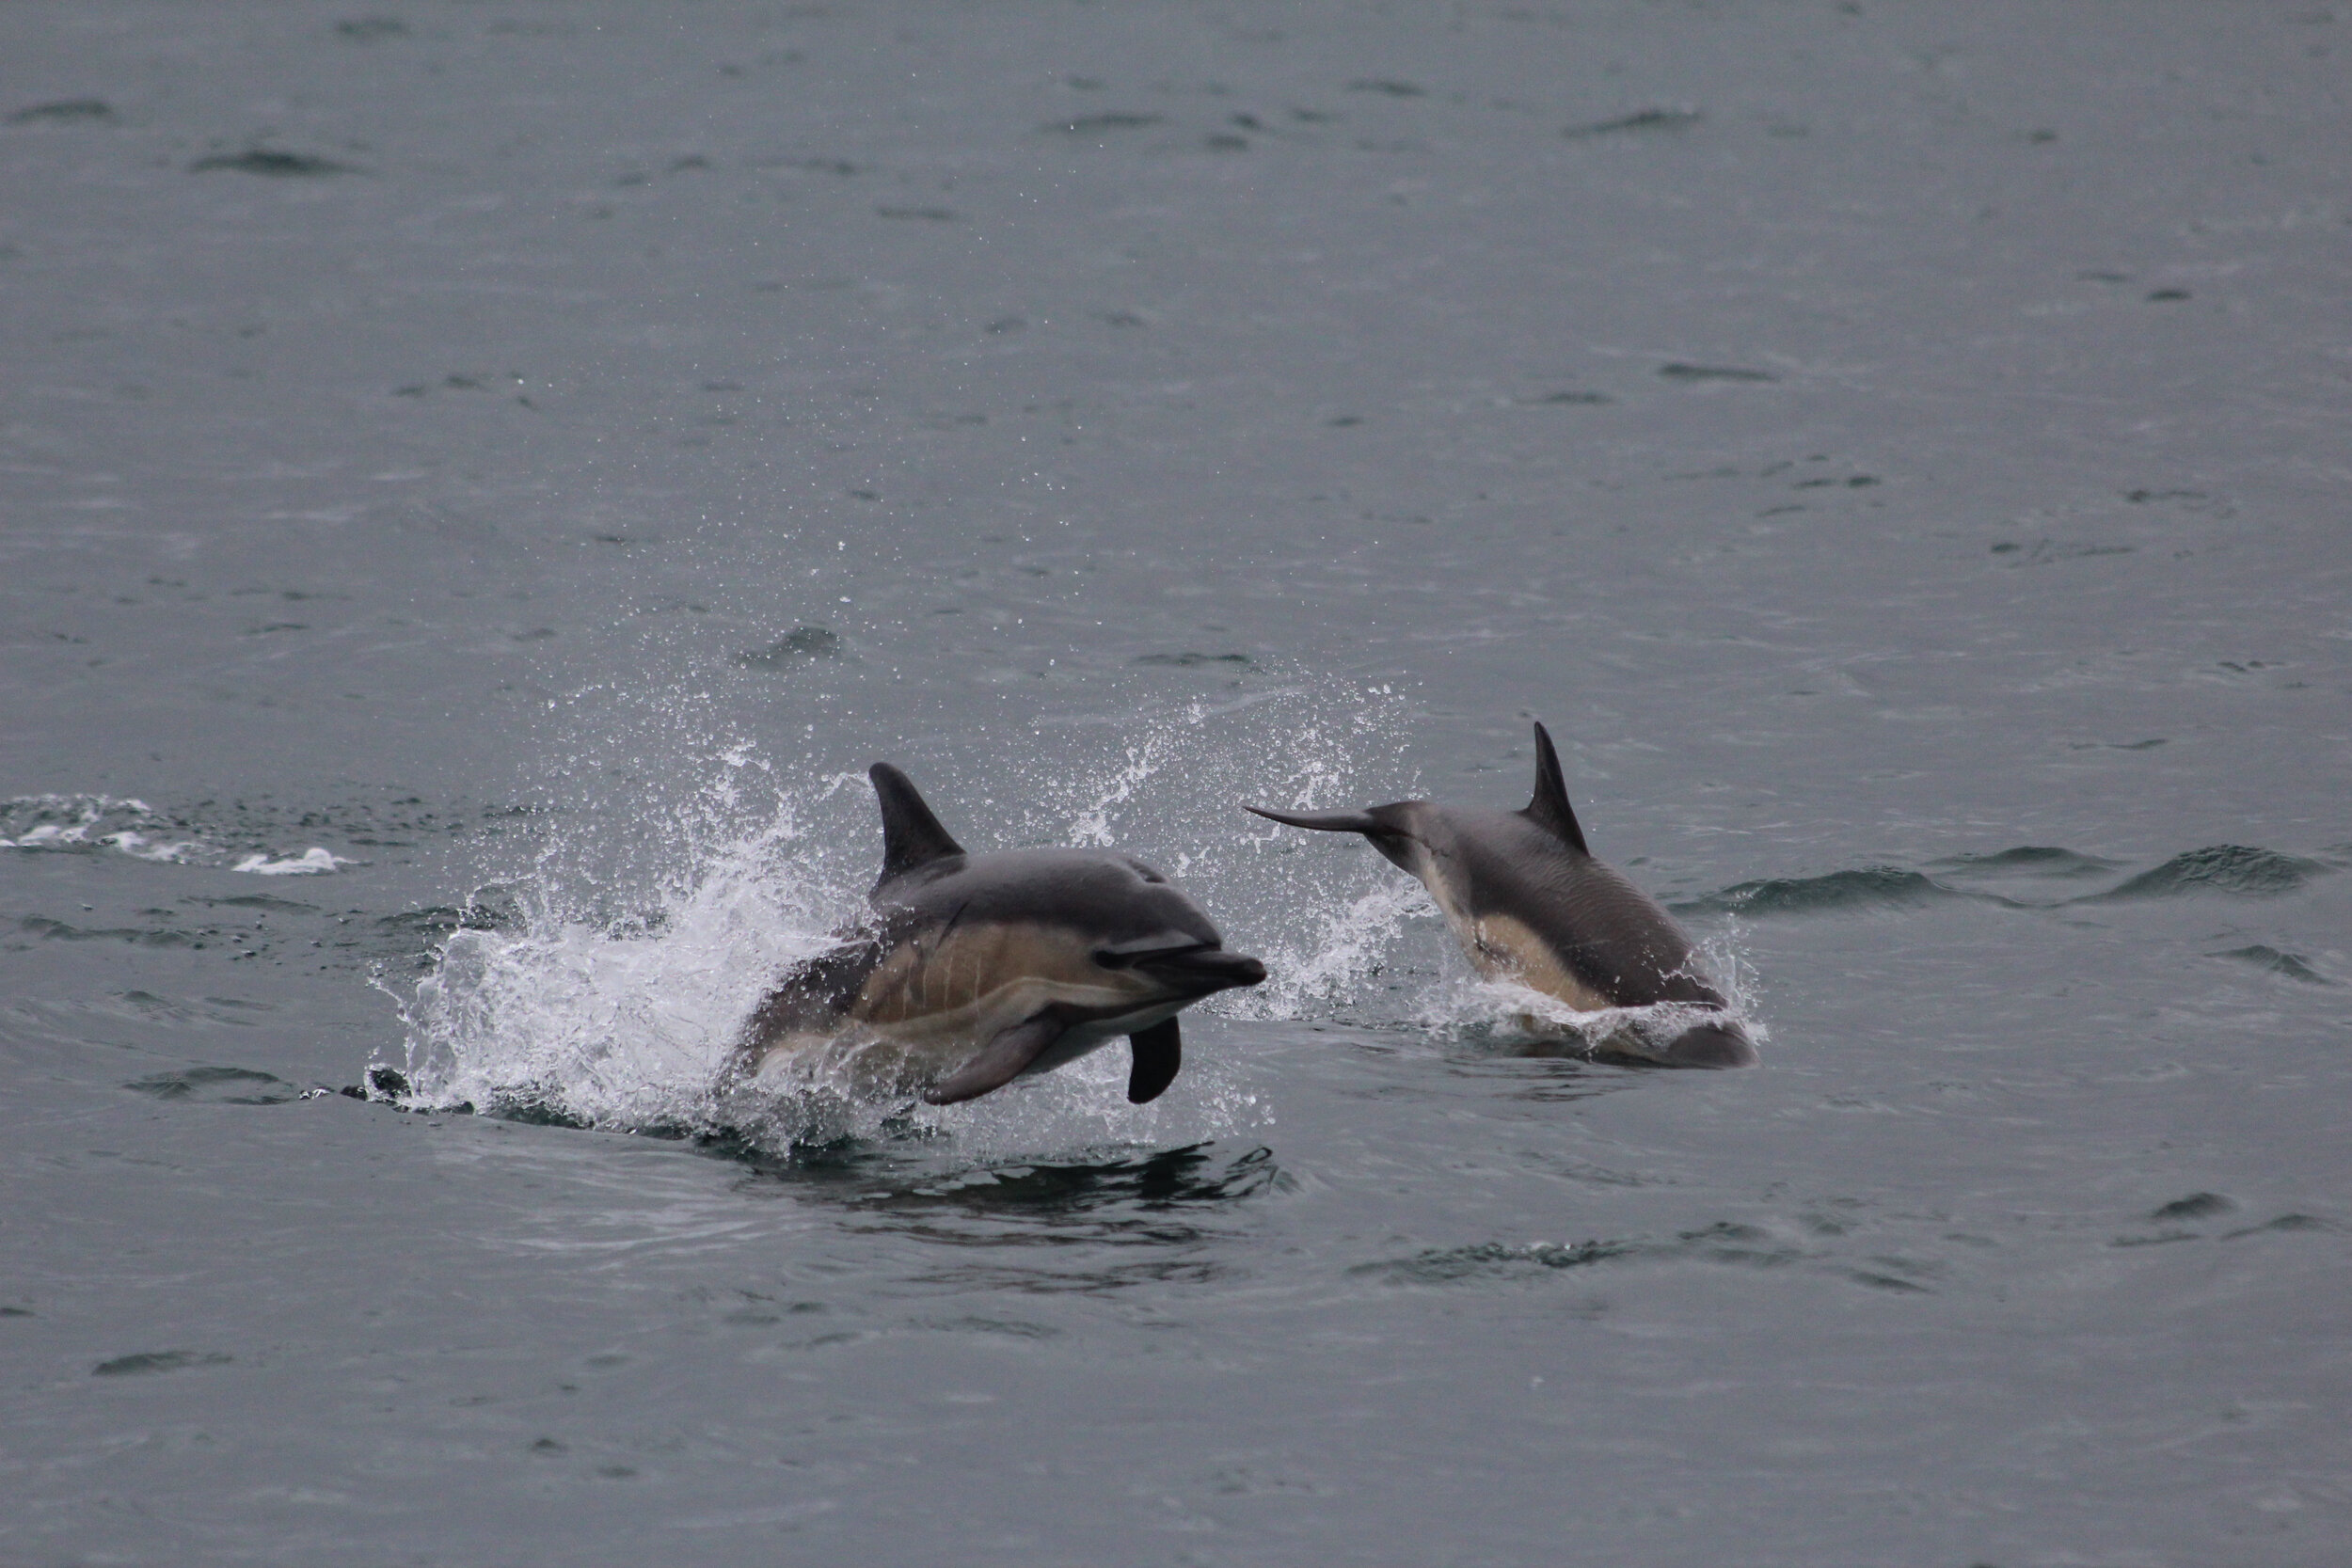 Dolphin in Gaelic (Leumadair) means 'one who leaps' - a perfect name for these acrobatic creatures.